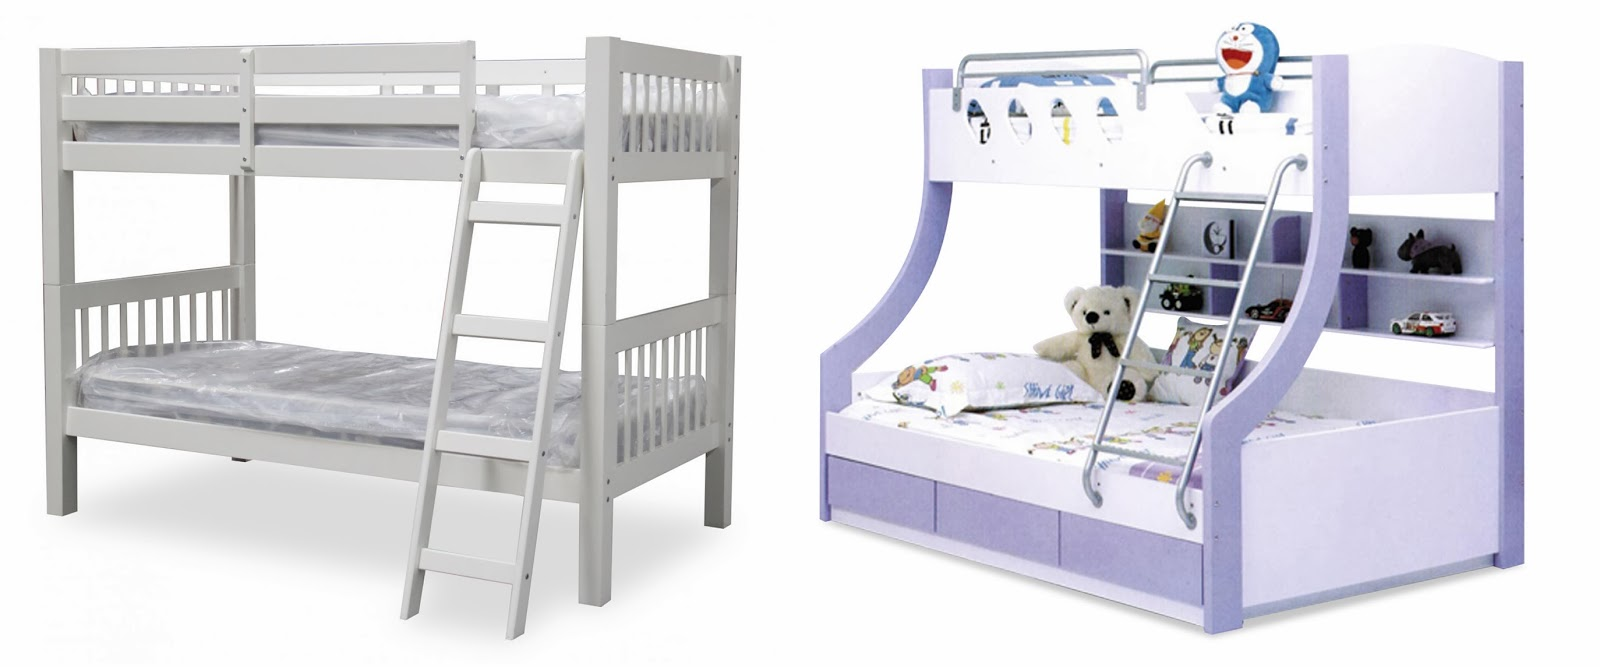 Mummy Hearts Money Choosing A Bed To Last The Distance